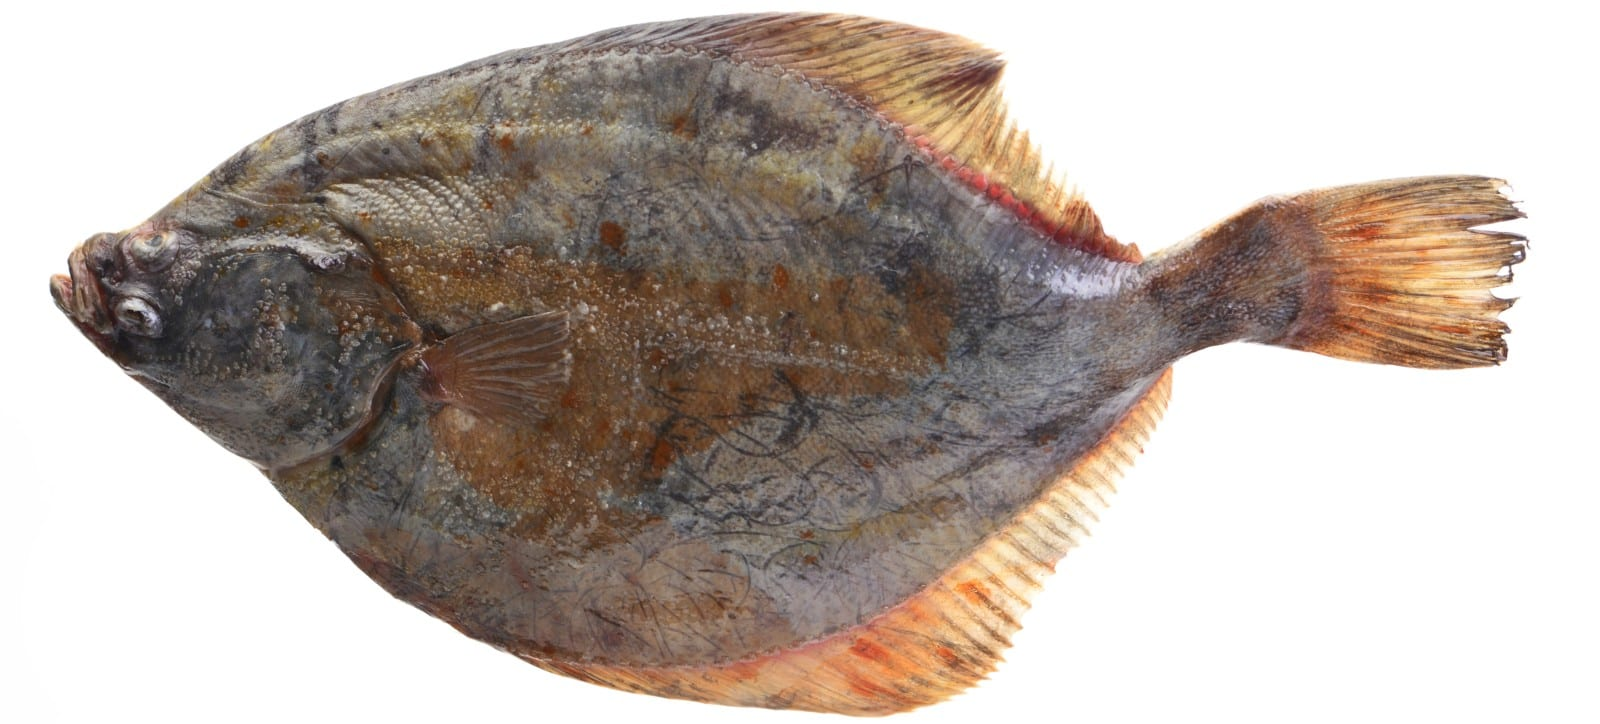 Profile image of a halibut